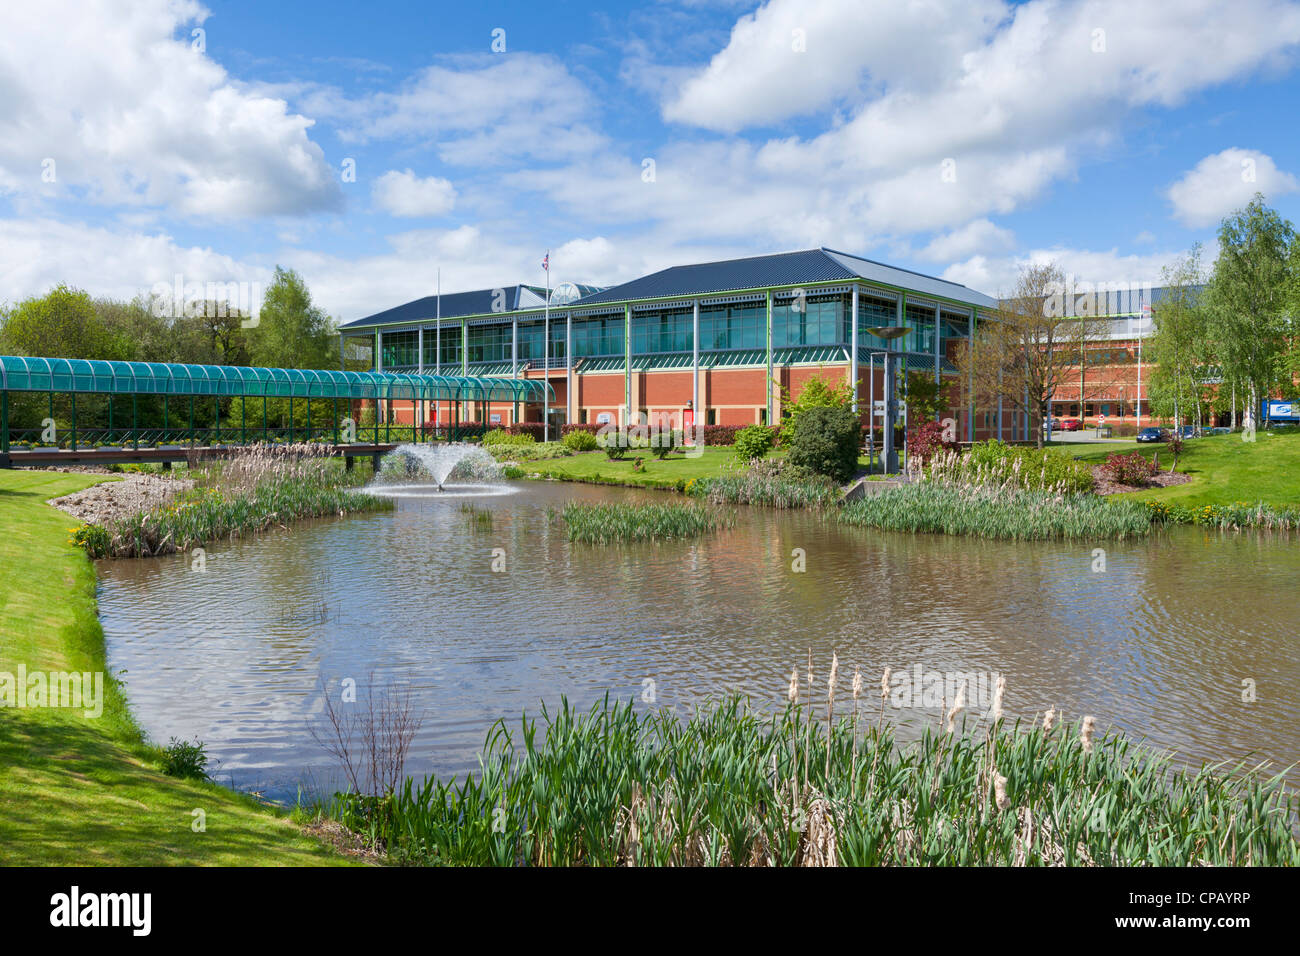 Sir Denis Rooke building home of SEIC systems engineering Innovation centre Loughborough University Leicestershire - Stock Image